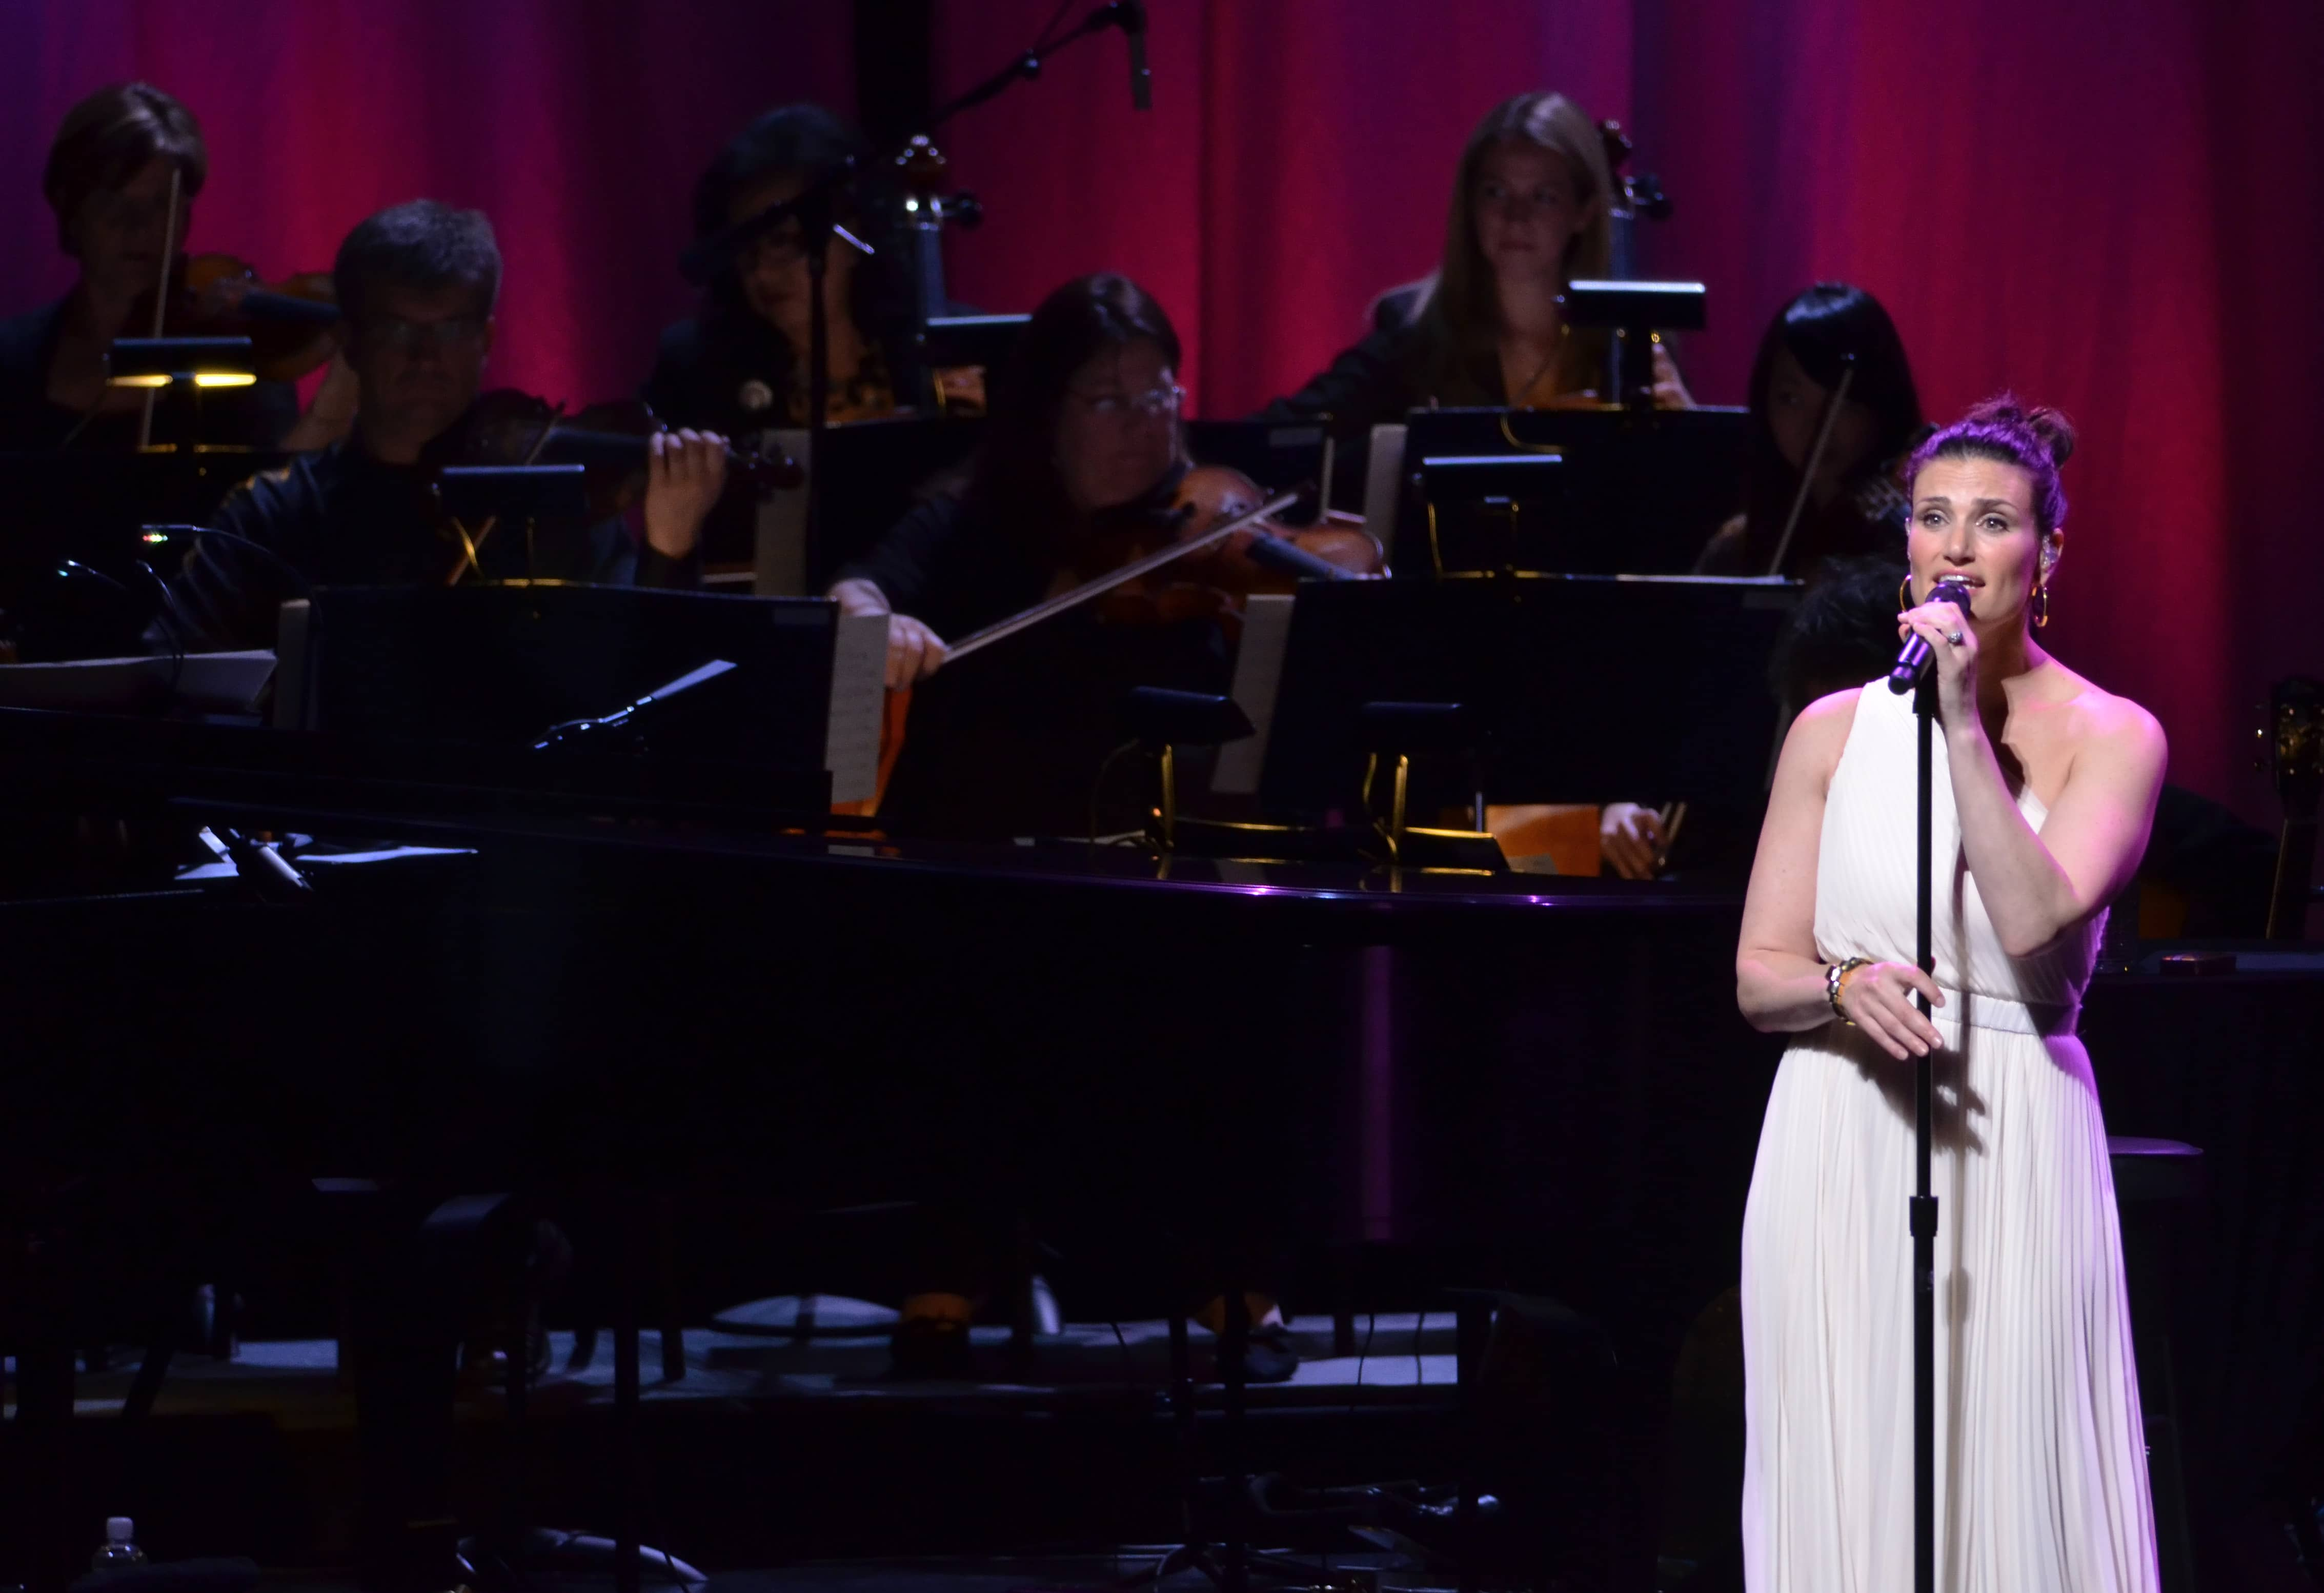 Idina Menzel performing at The Smith Center